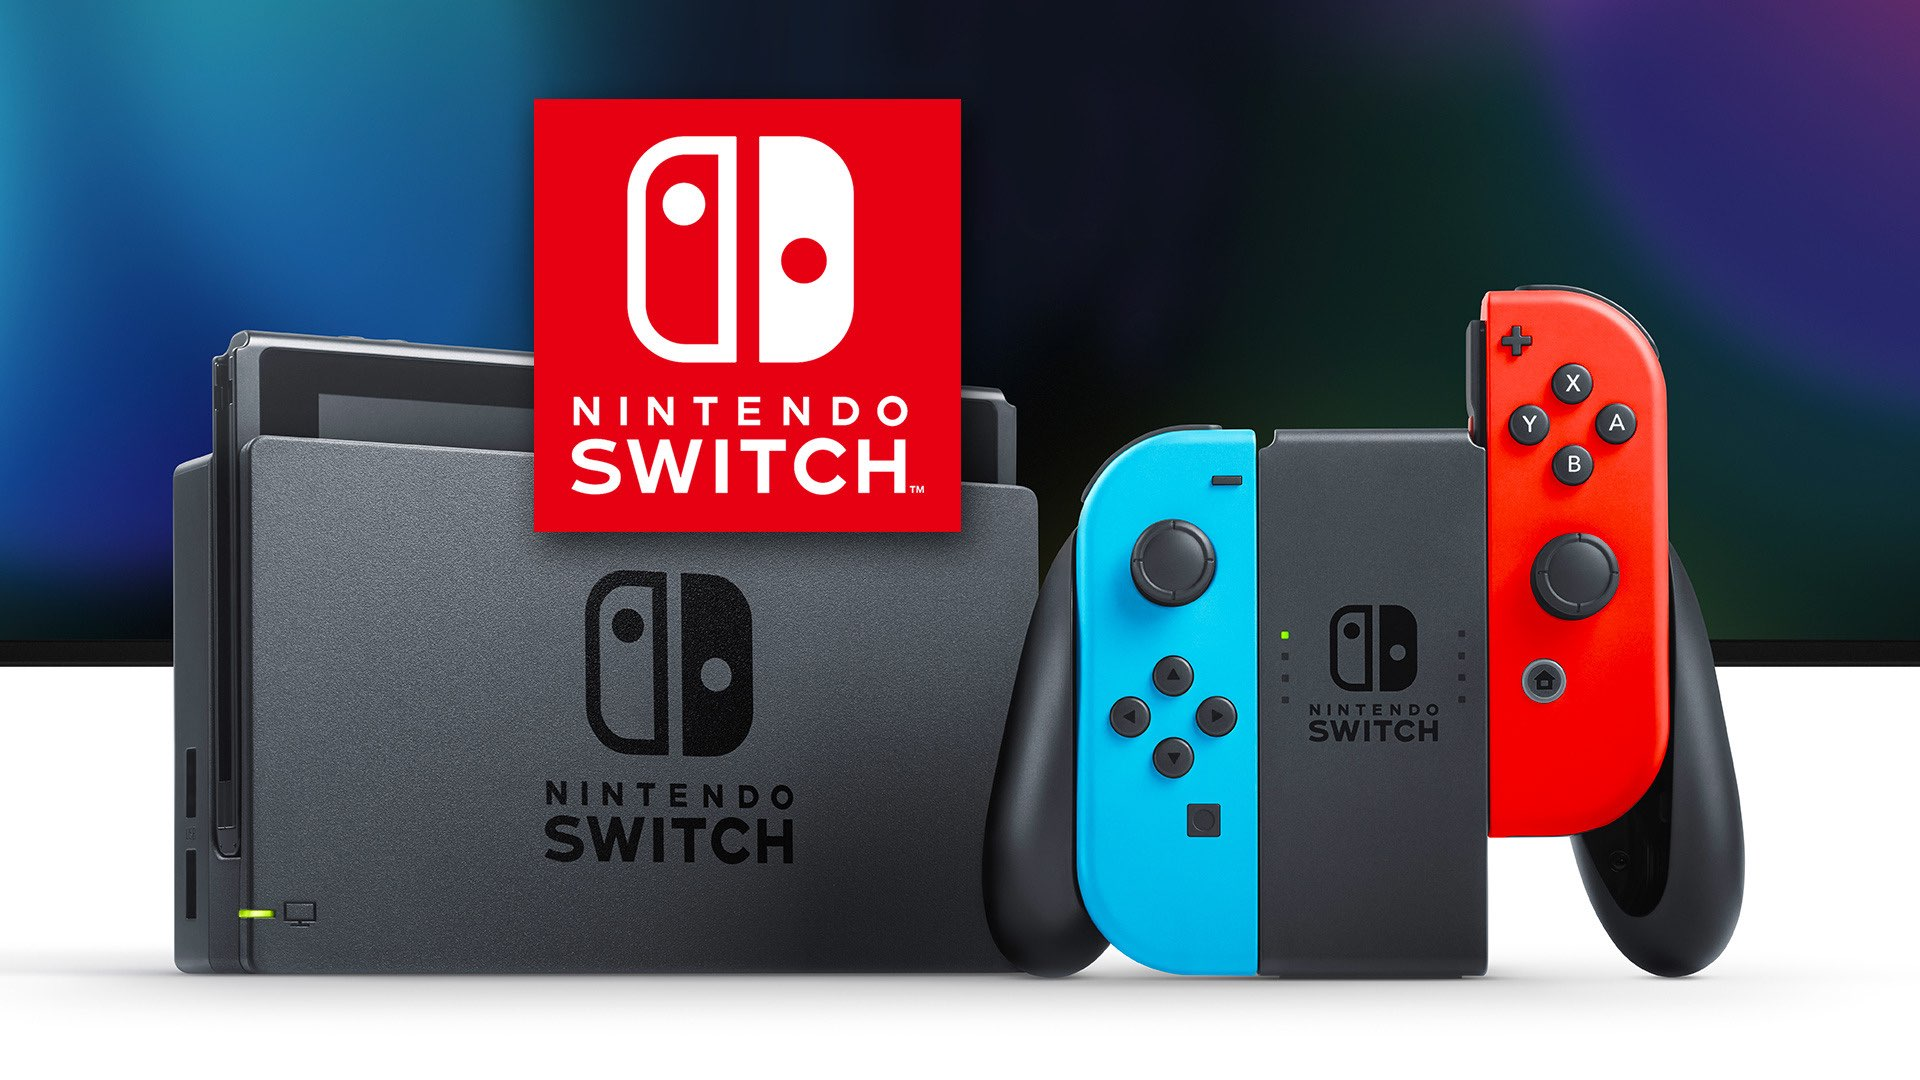 Nintendo plans next year to improve the output of the Switch